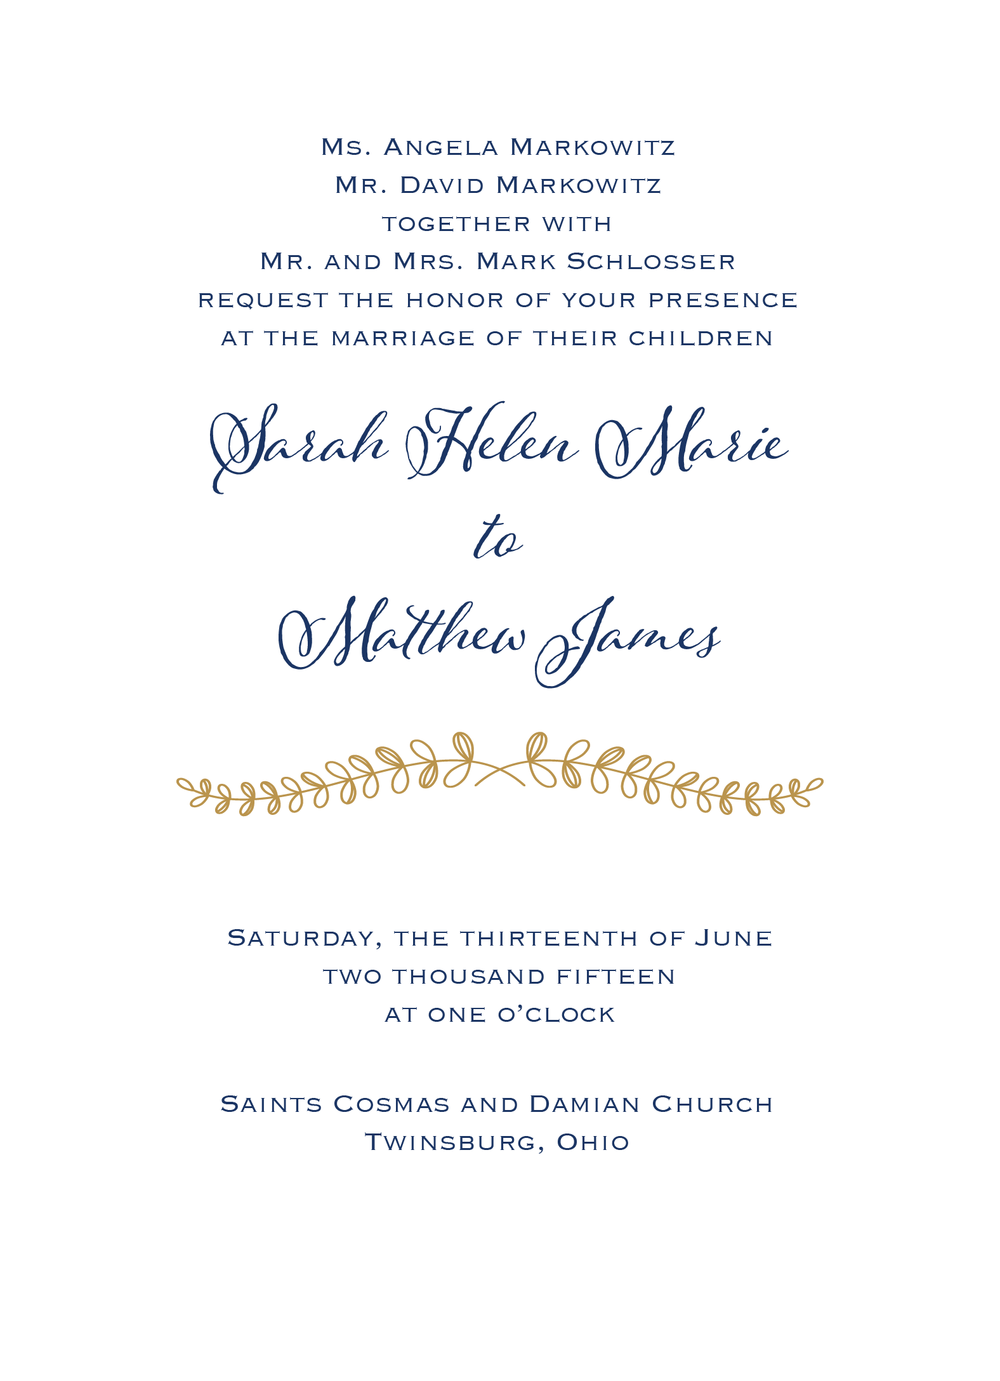 Sarah_Gray Wedding Suite_Invitation.png